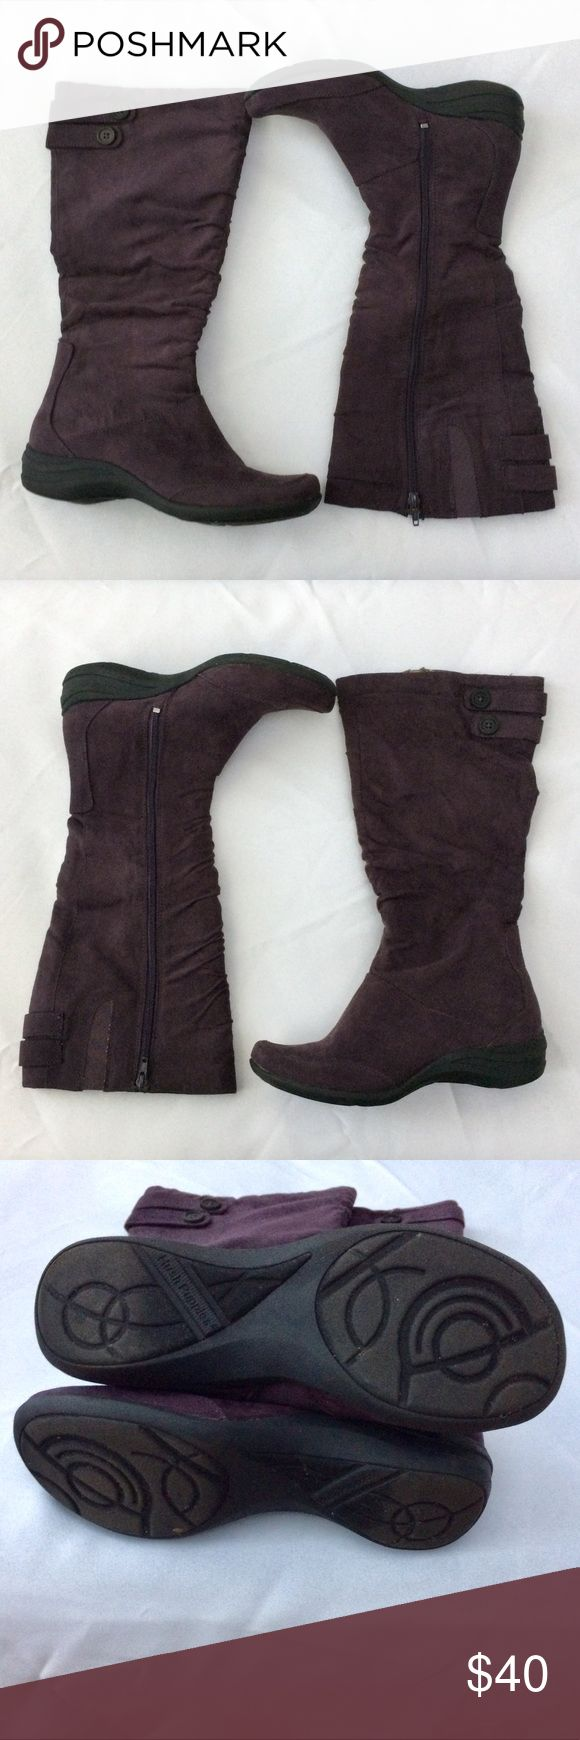 "💥NEW LISTING Hush Puppies Milieu Boot Size 9M💥 Hush Puppies Millieu women's boot size 9M.   Gorgeous eggplant color. Slouch side zip boot (zipper measures about 14"").   Two button design accent top of boots on back sides. Elastic on top of boots.   Fabric lined to provide just the right amount of warmth & comfort. Heel provides improved traction.   Shaft measures about 14"" from arch. Boot opening circumference 14.5. Heel Height about 1.5"". Block heel type.   All man made materials (feels…"